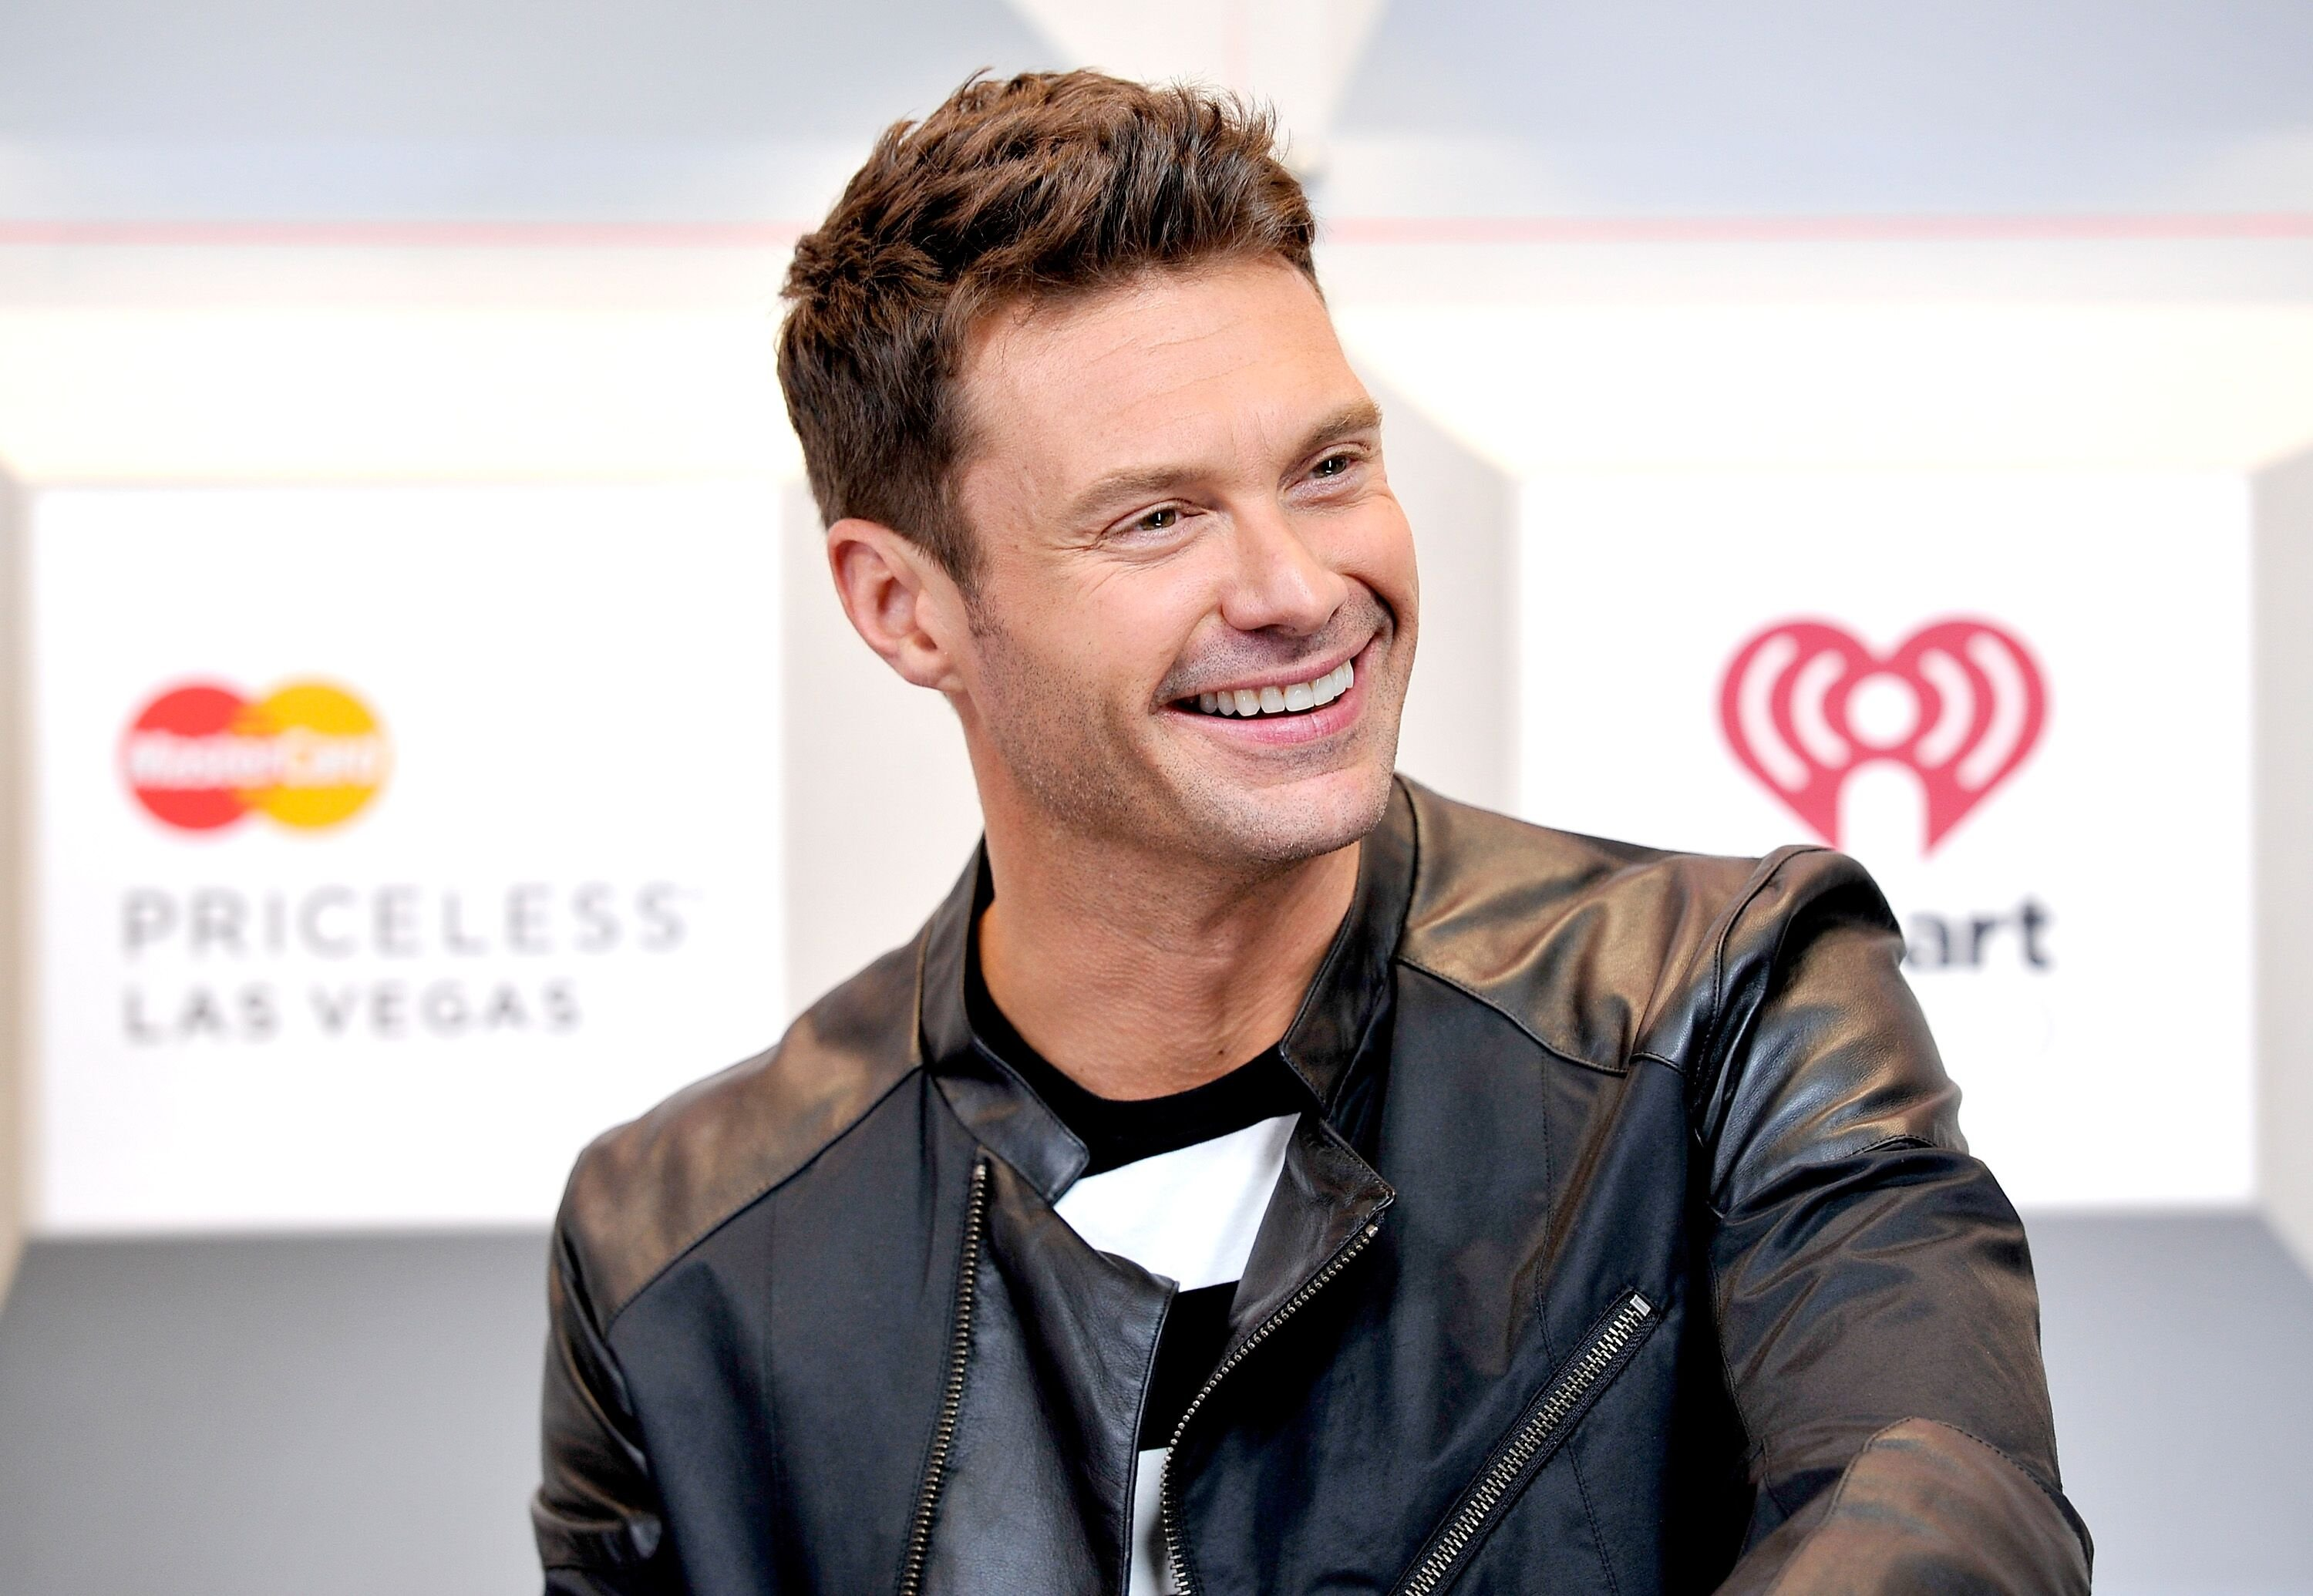 Ryan Seacrest attends the 2014 iHeartRadio Music Festival at the MGM Grand Garden Arena on September 19, 2014. | Source: Getty Images